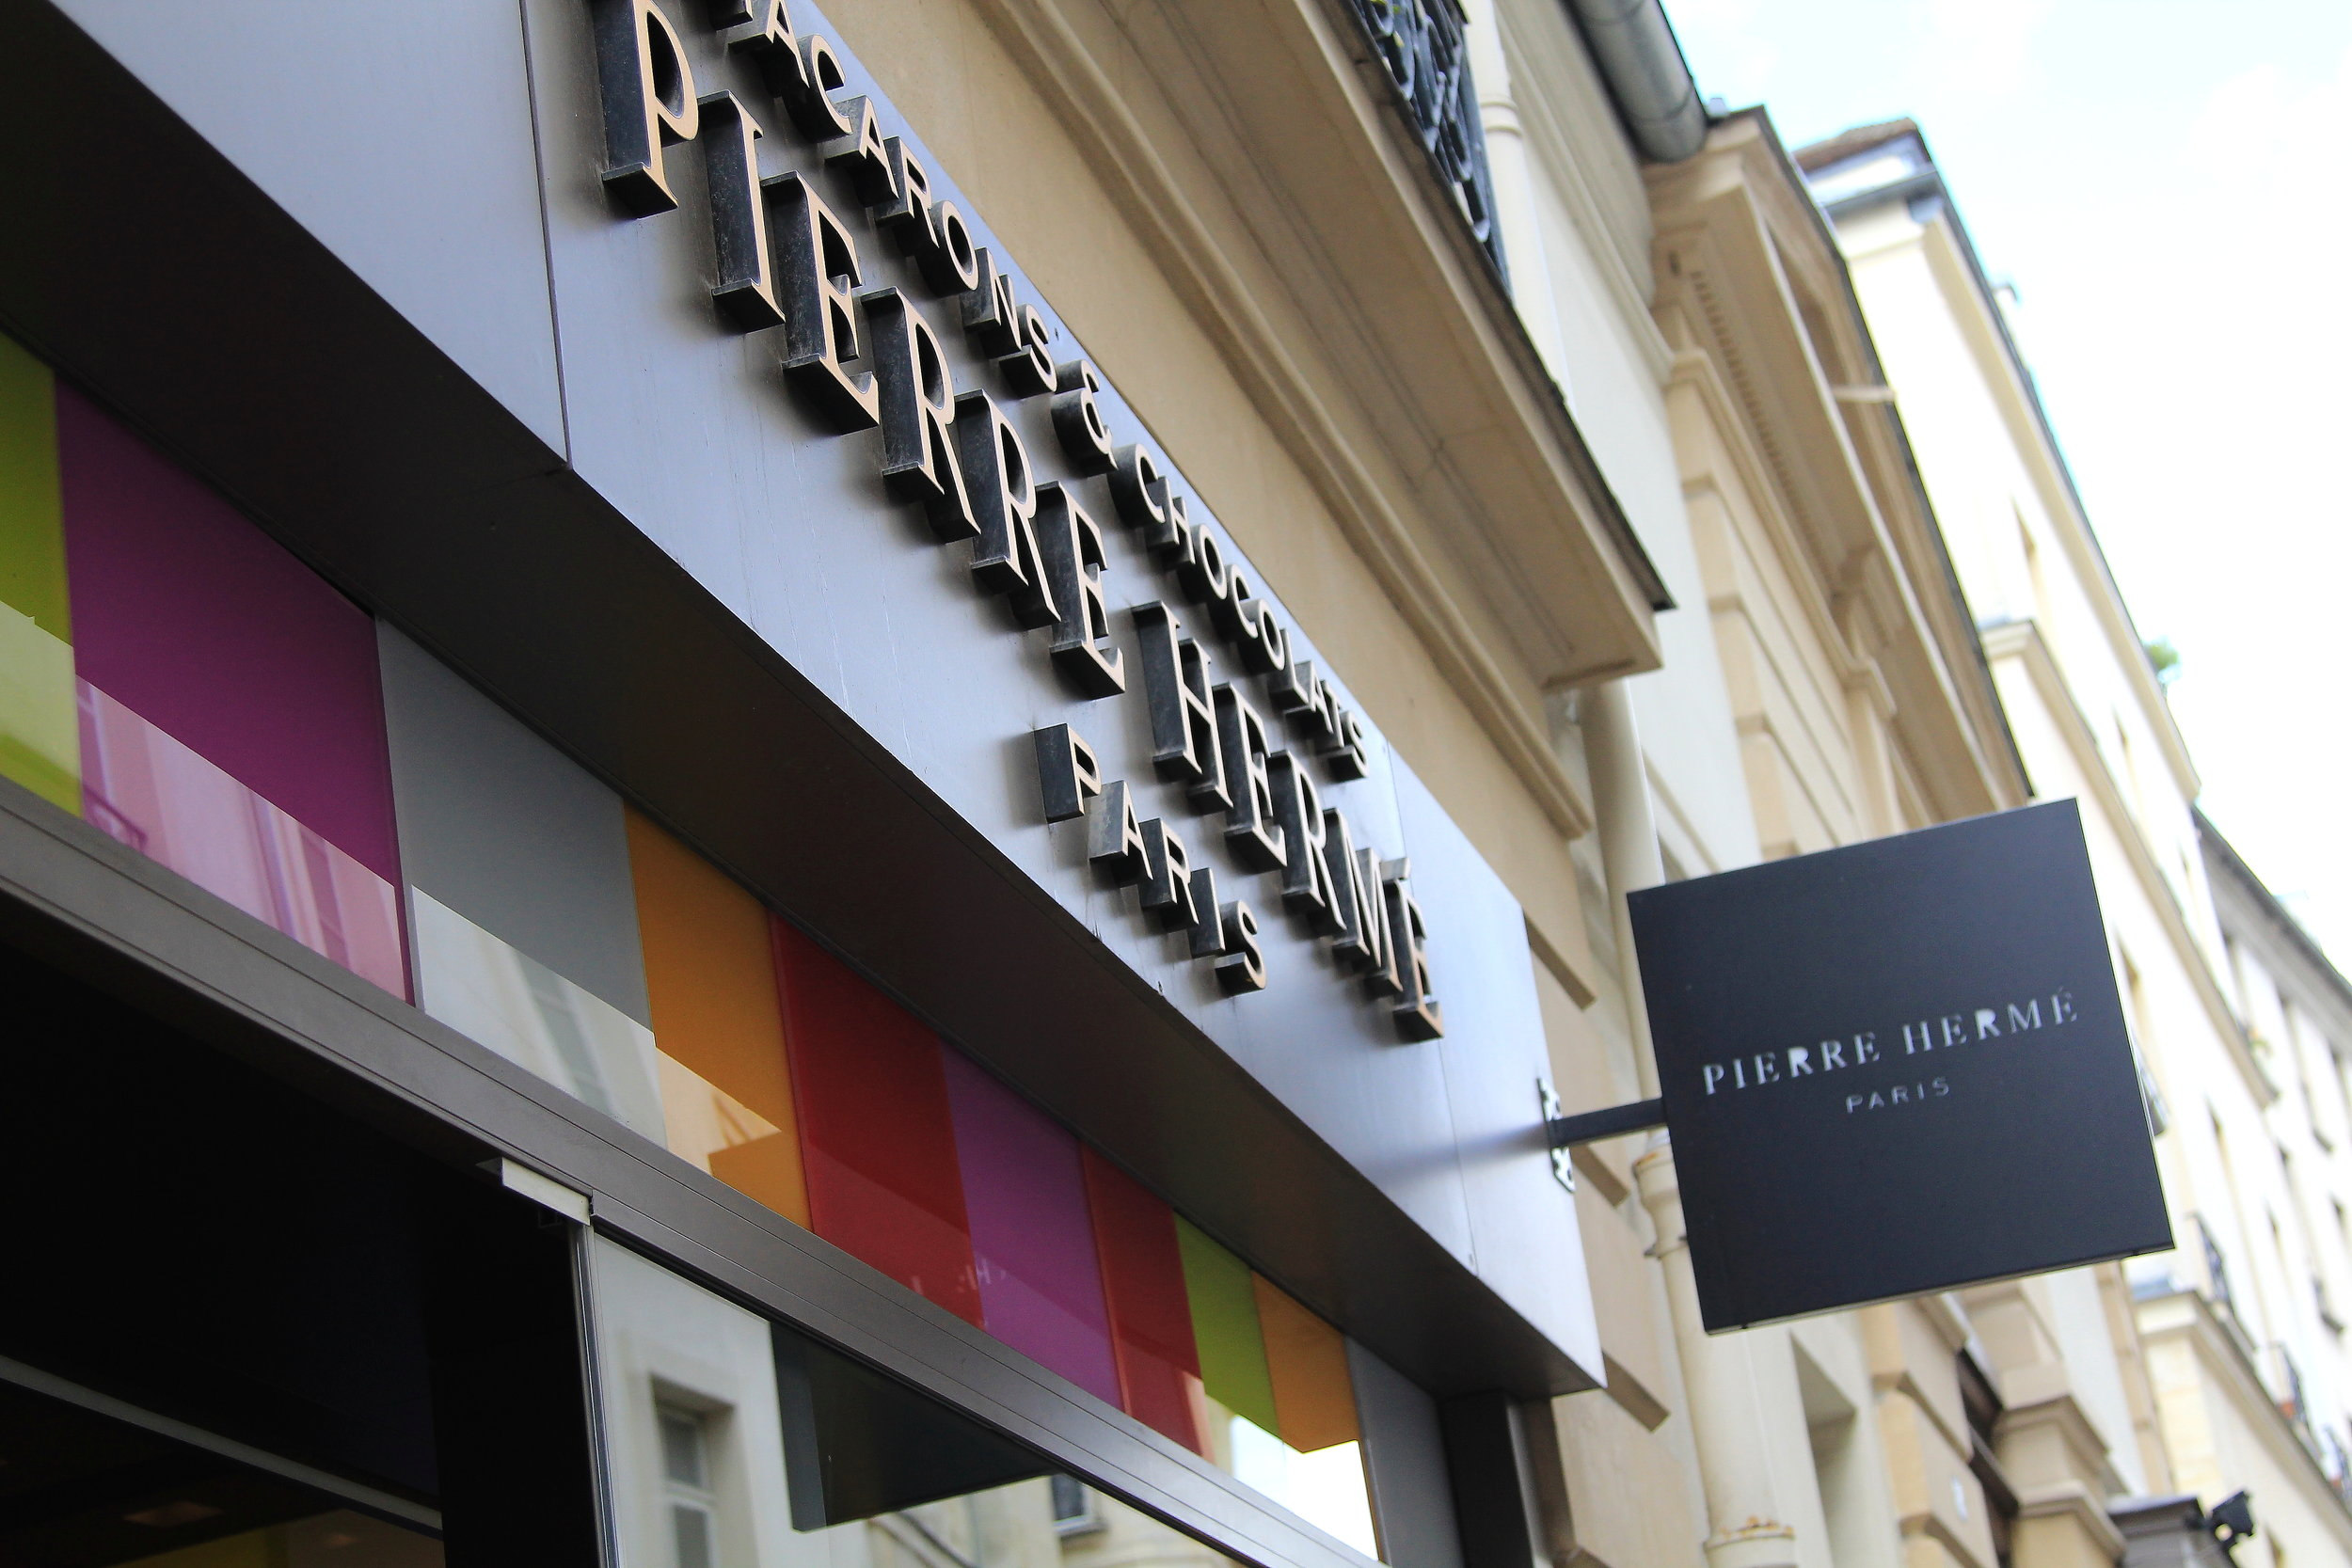 Pierre Herme in Paris - better macarons than Laduree